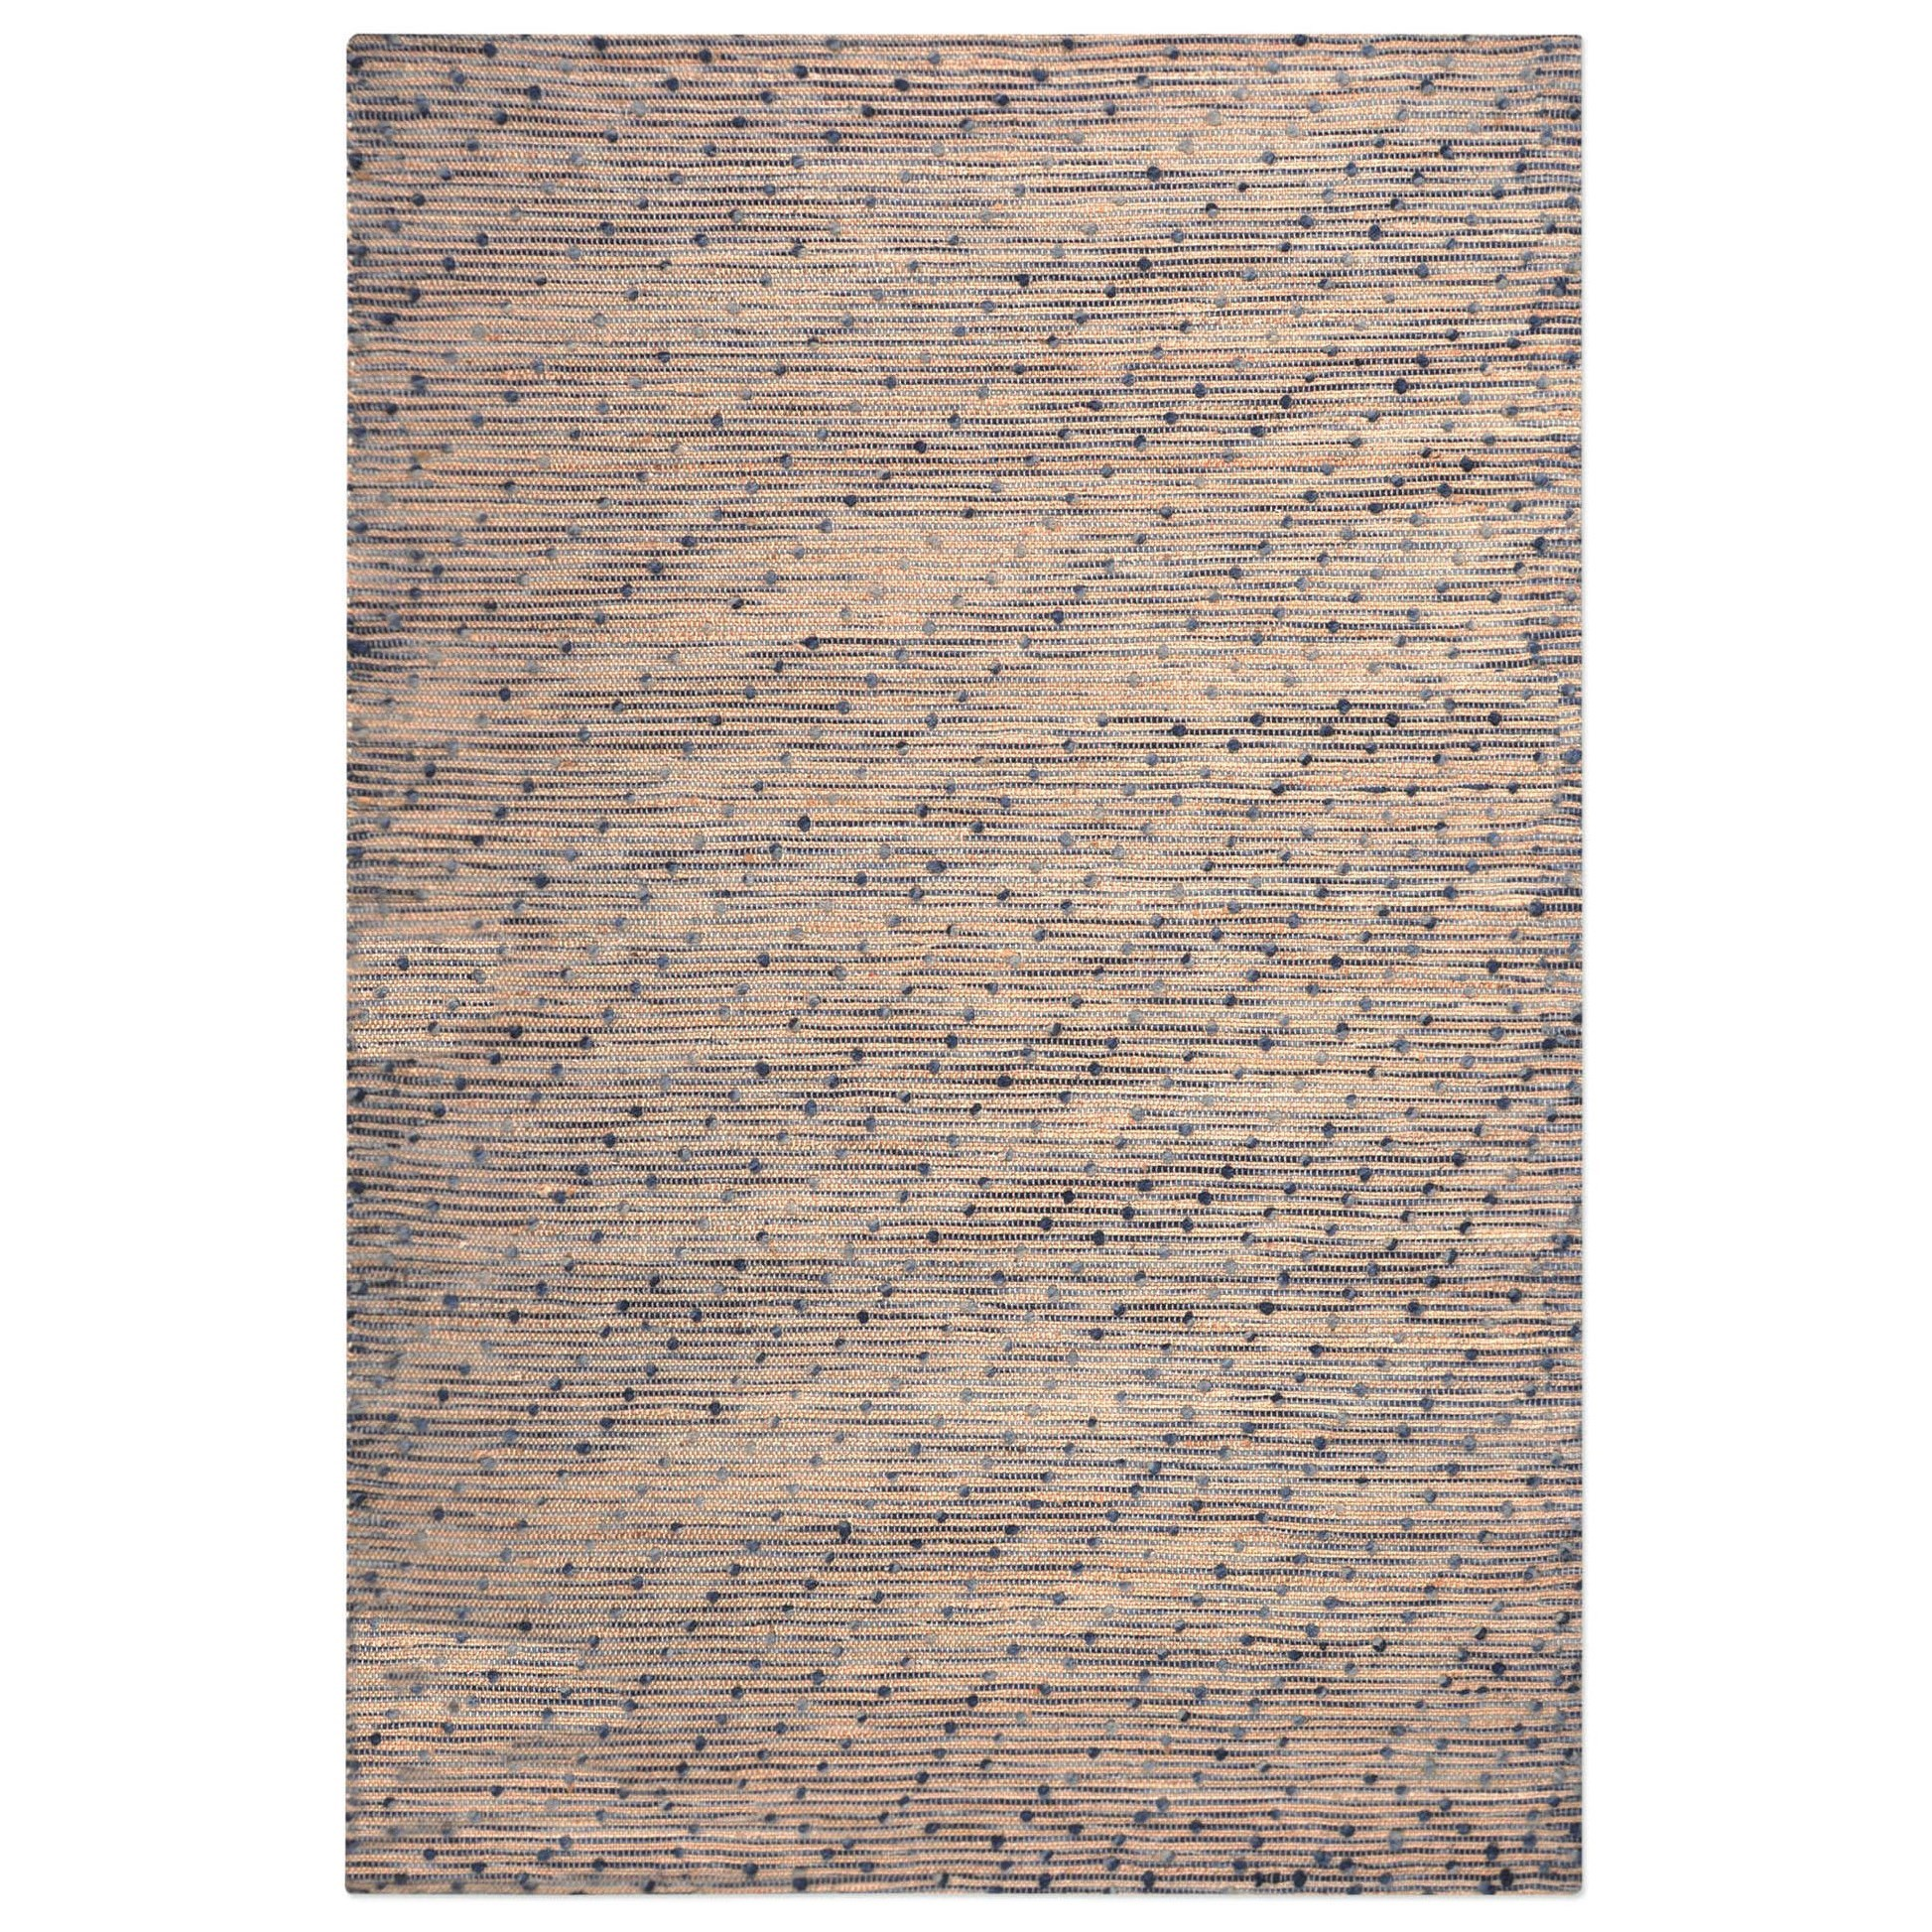 Uttermost Rugs Imara Navy 5 x 8 Rug - Item Number: 71073-5